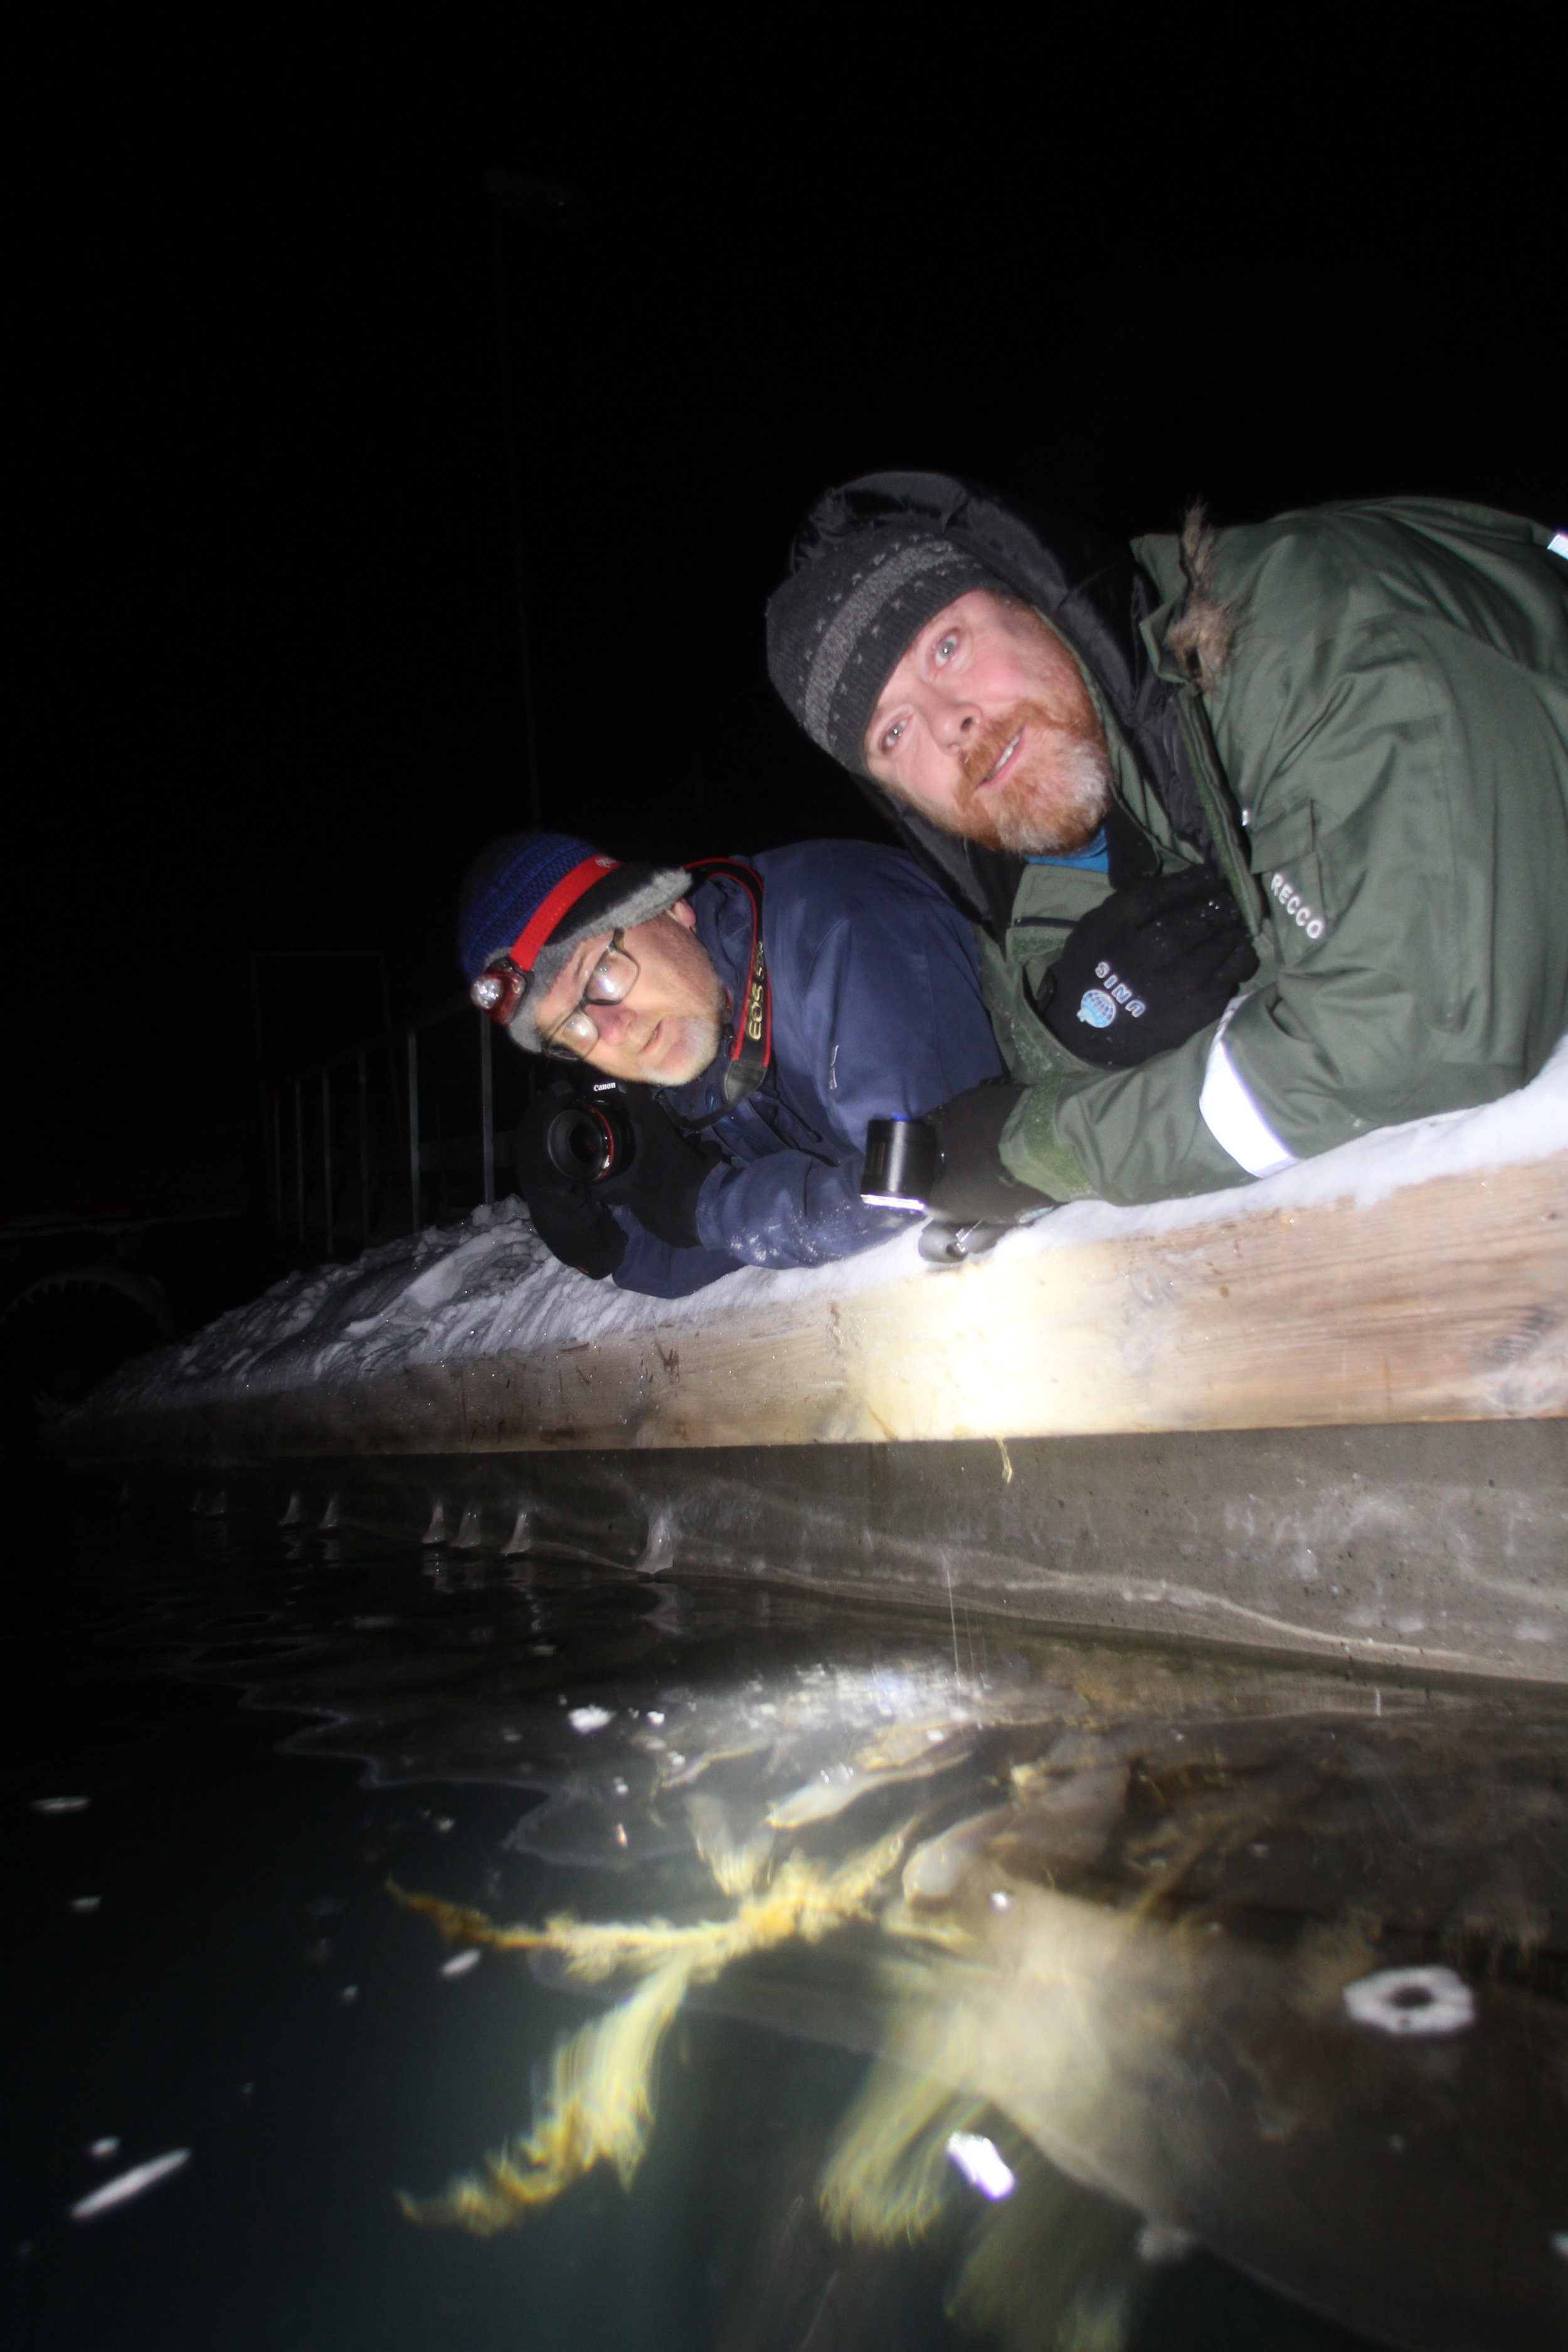 Biology professors Geir Johnsen (left) from NTNU and Jørgen Berge from UiT are leading sensational research in Svalbard. They have arrived at the conclusion that there is teeming life in icy waters, even in the darkest polar night. Photo: Ole Magnus Rapp